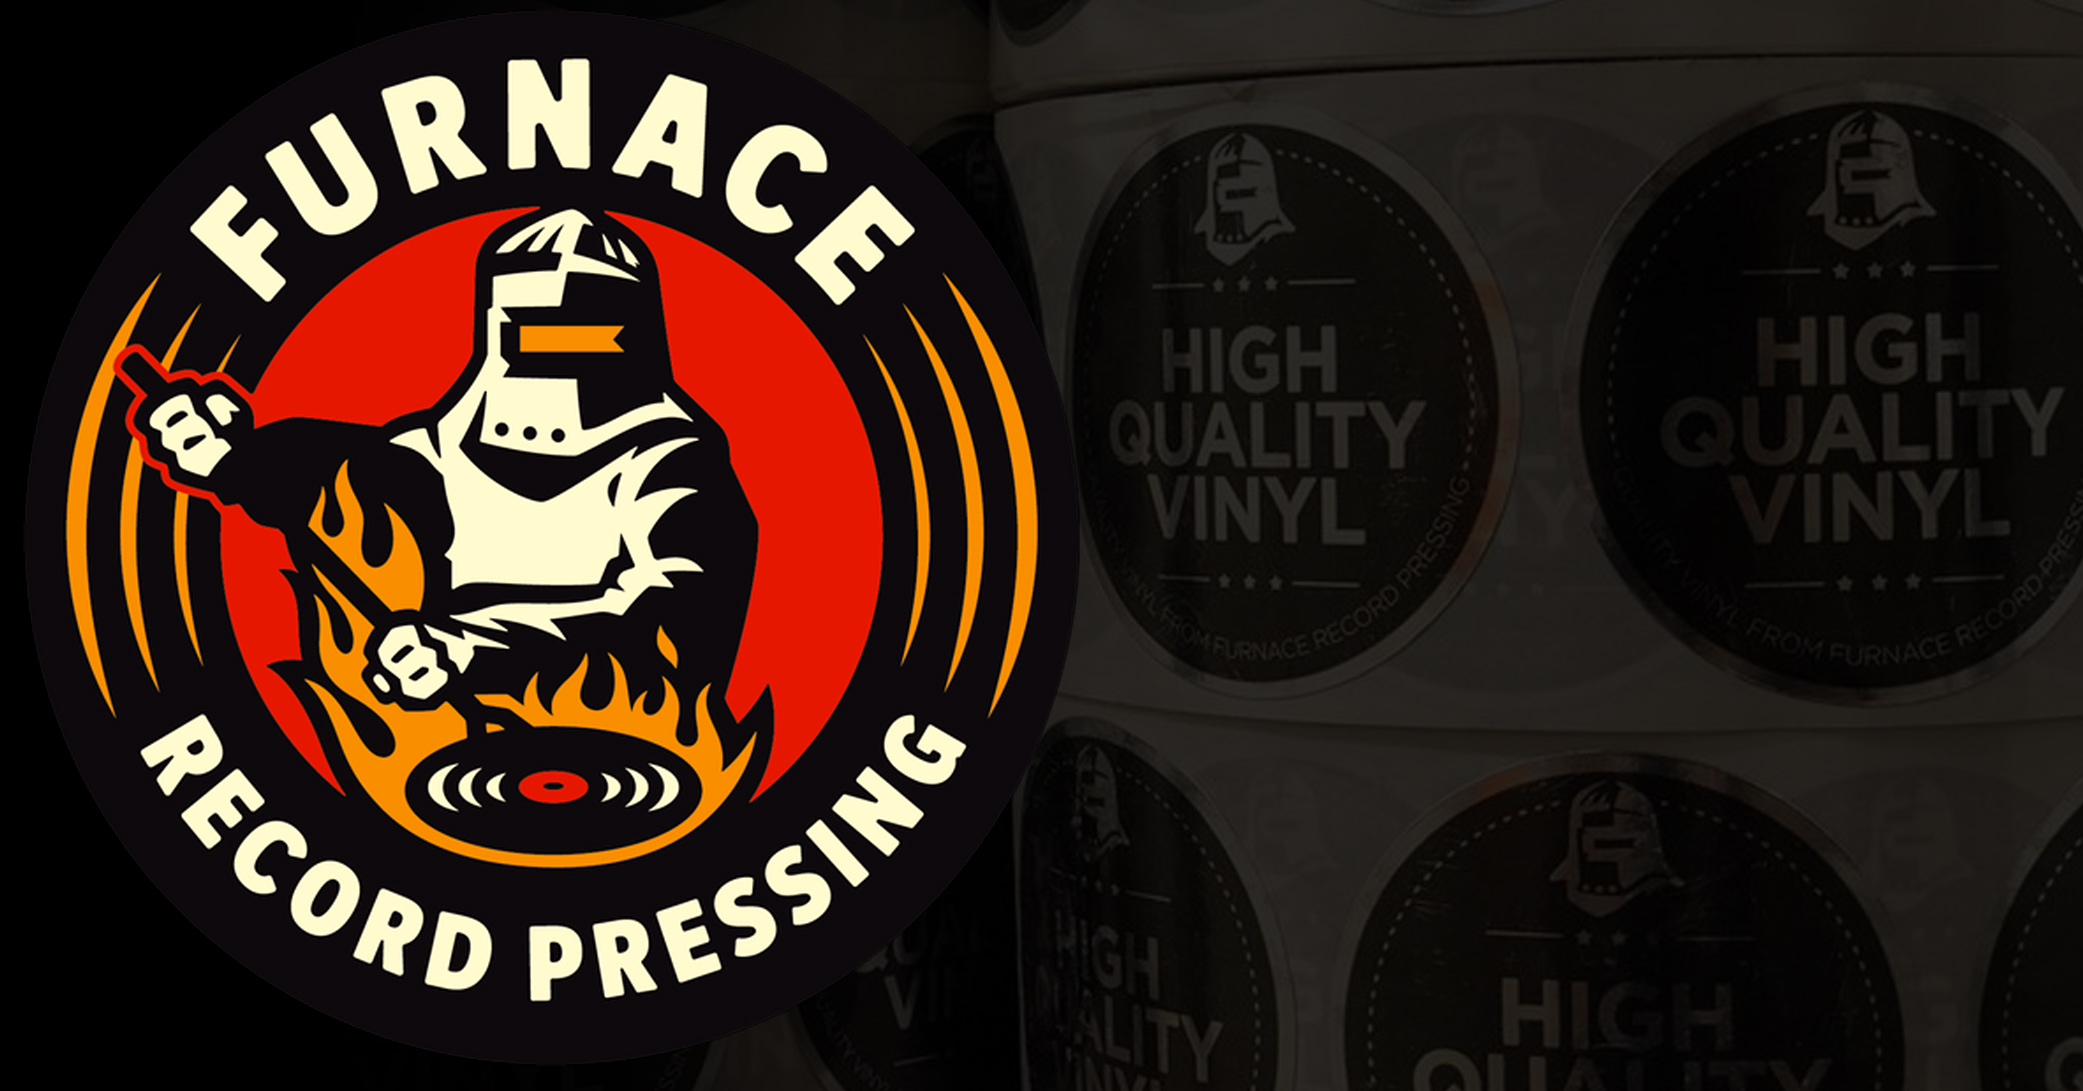 furnace-vinyl-interview-03.jpg